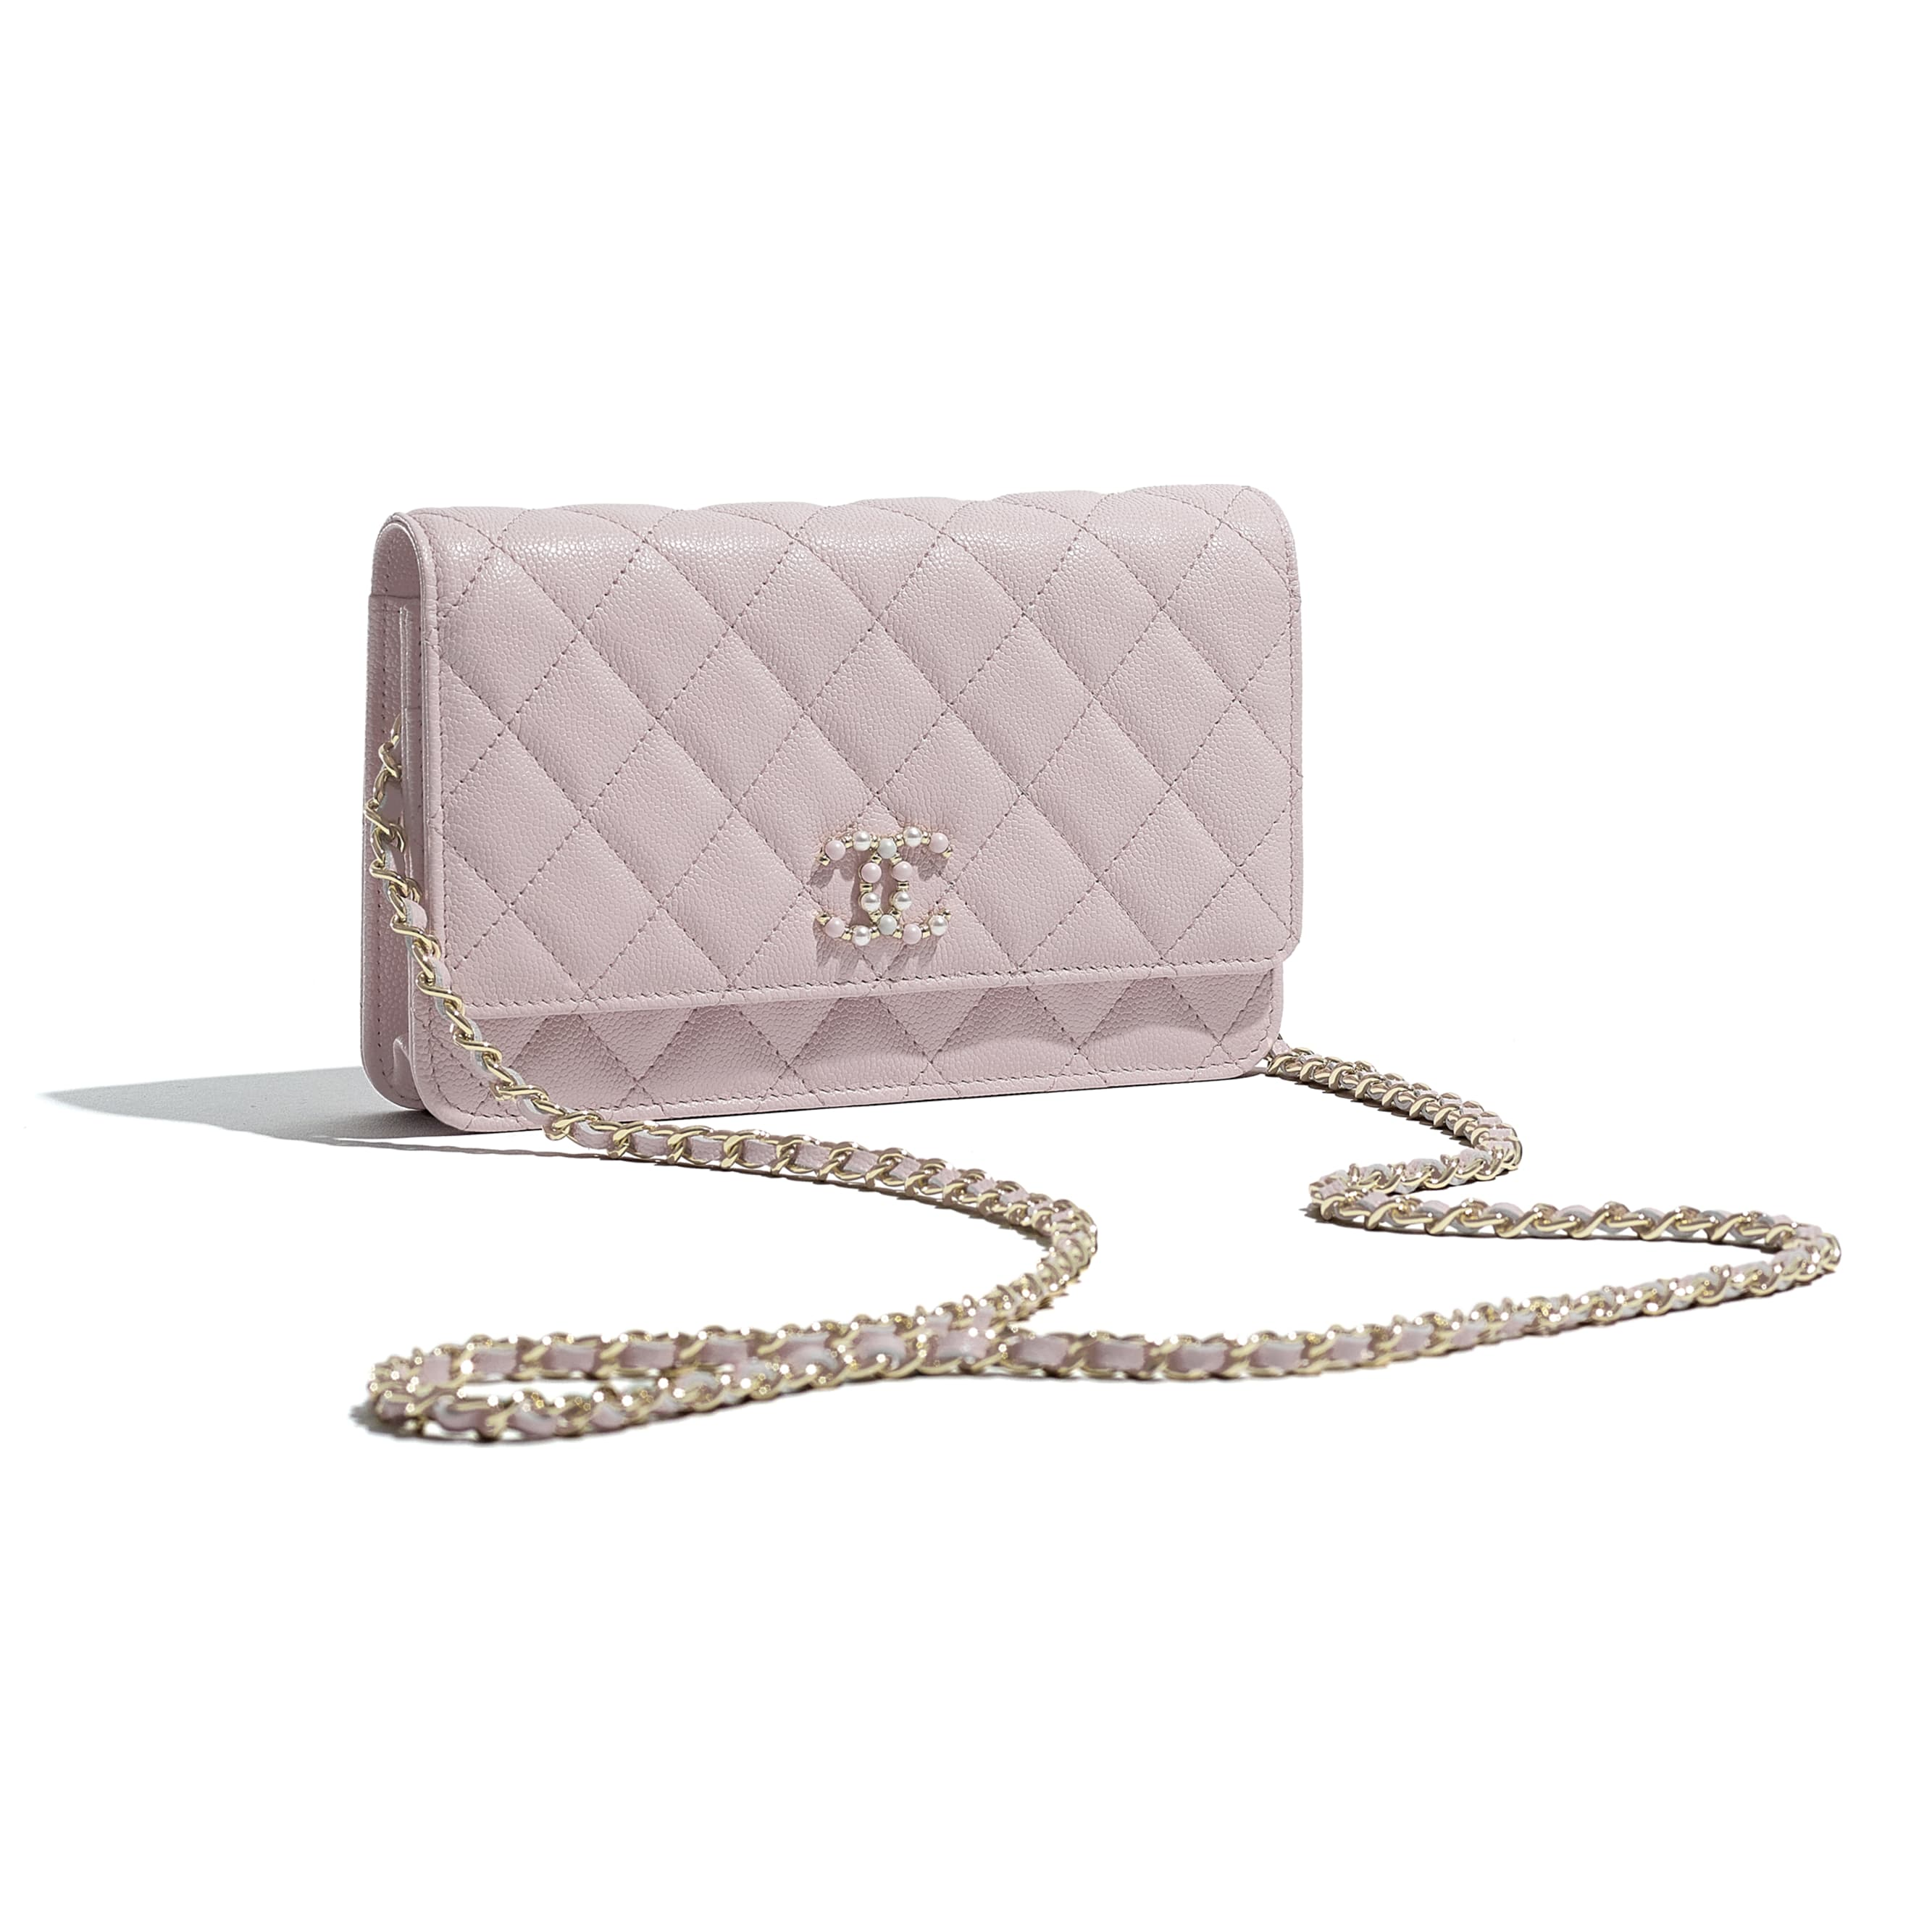 Wallet On Chain - Light Pink - Grained Calfskin & Gold-Tone Metal - CHANEL - Extra view - see standard sized version